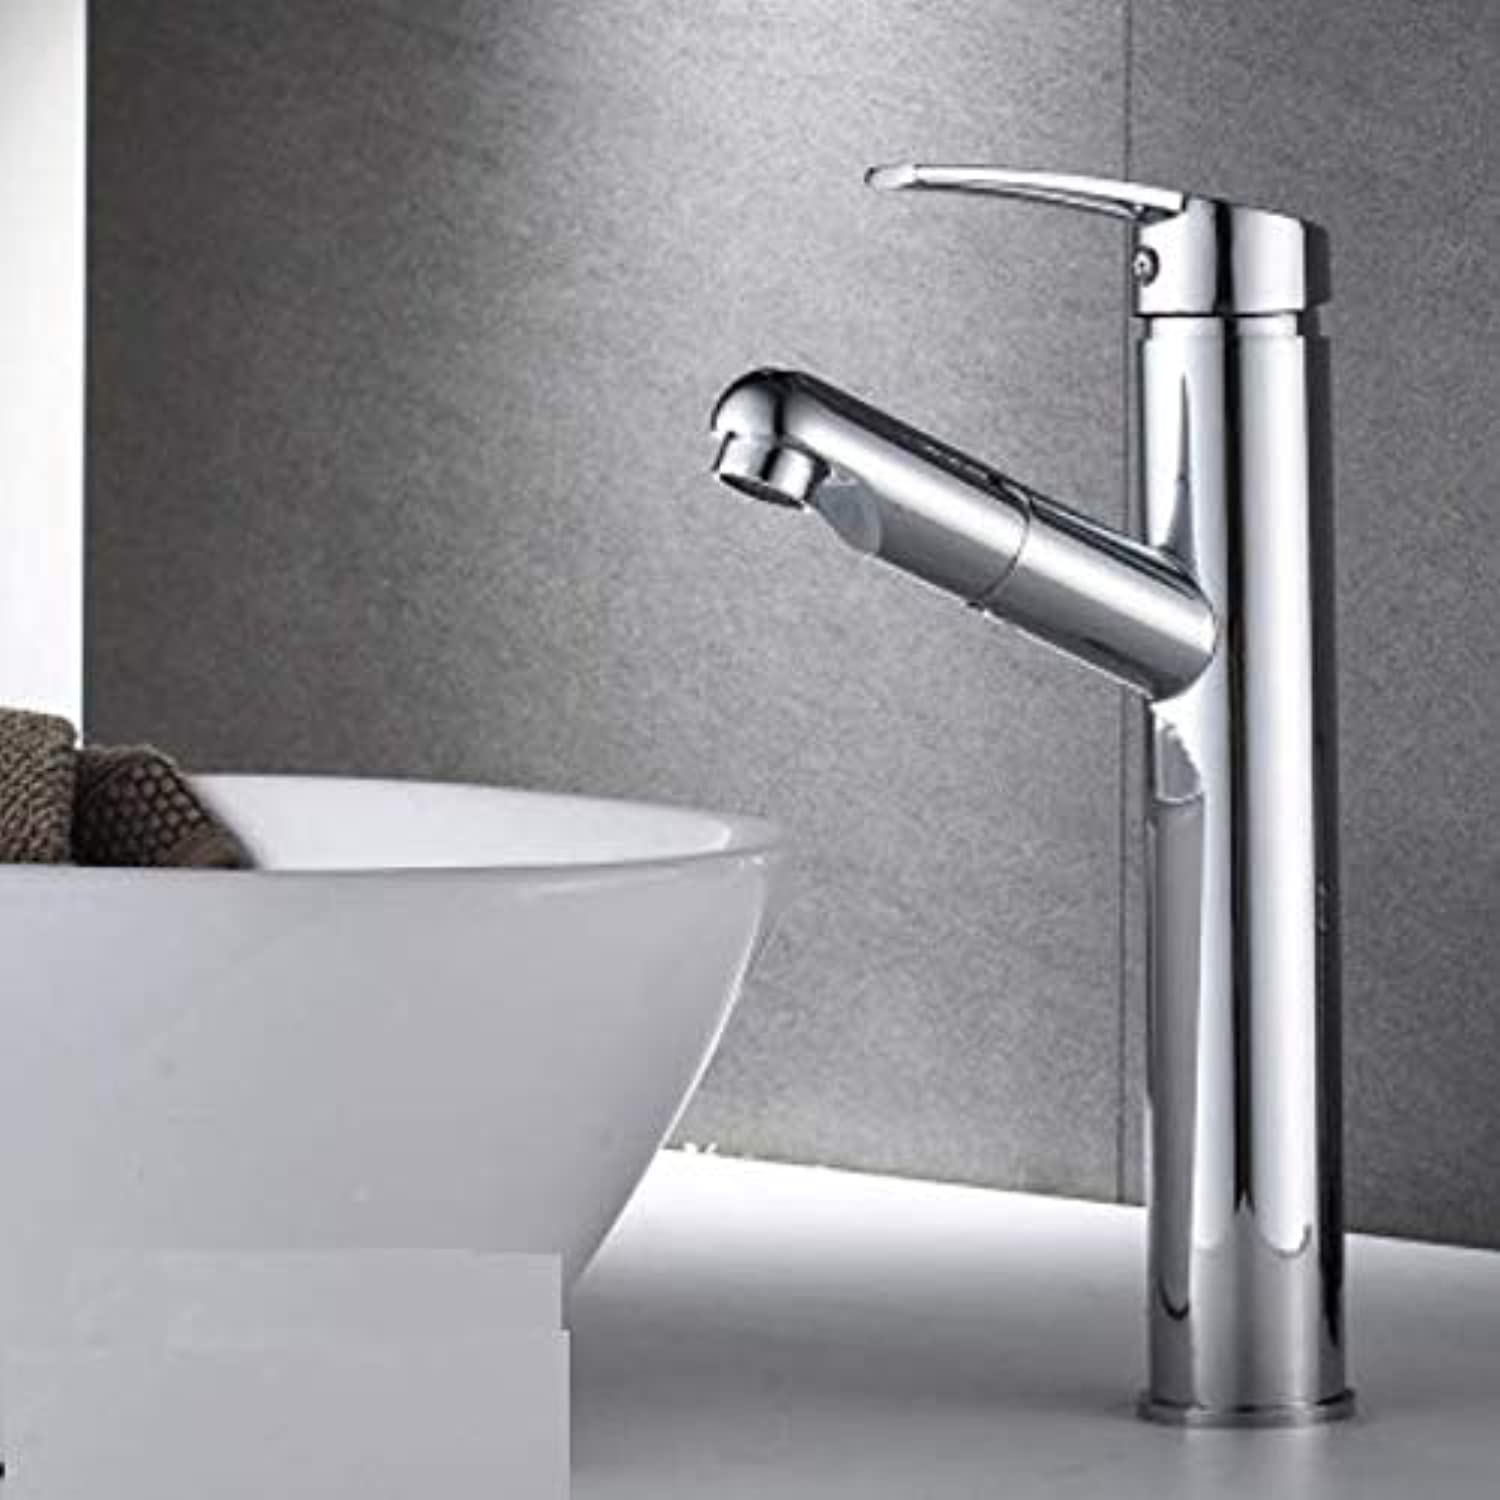 Dwthh Basin Sink Faucet Single Handle Bathroom Mixer Taps color Deck Mounted Hot and Cold Water Tap Square Shape